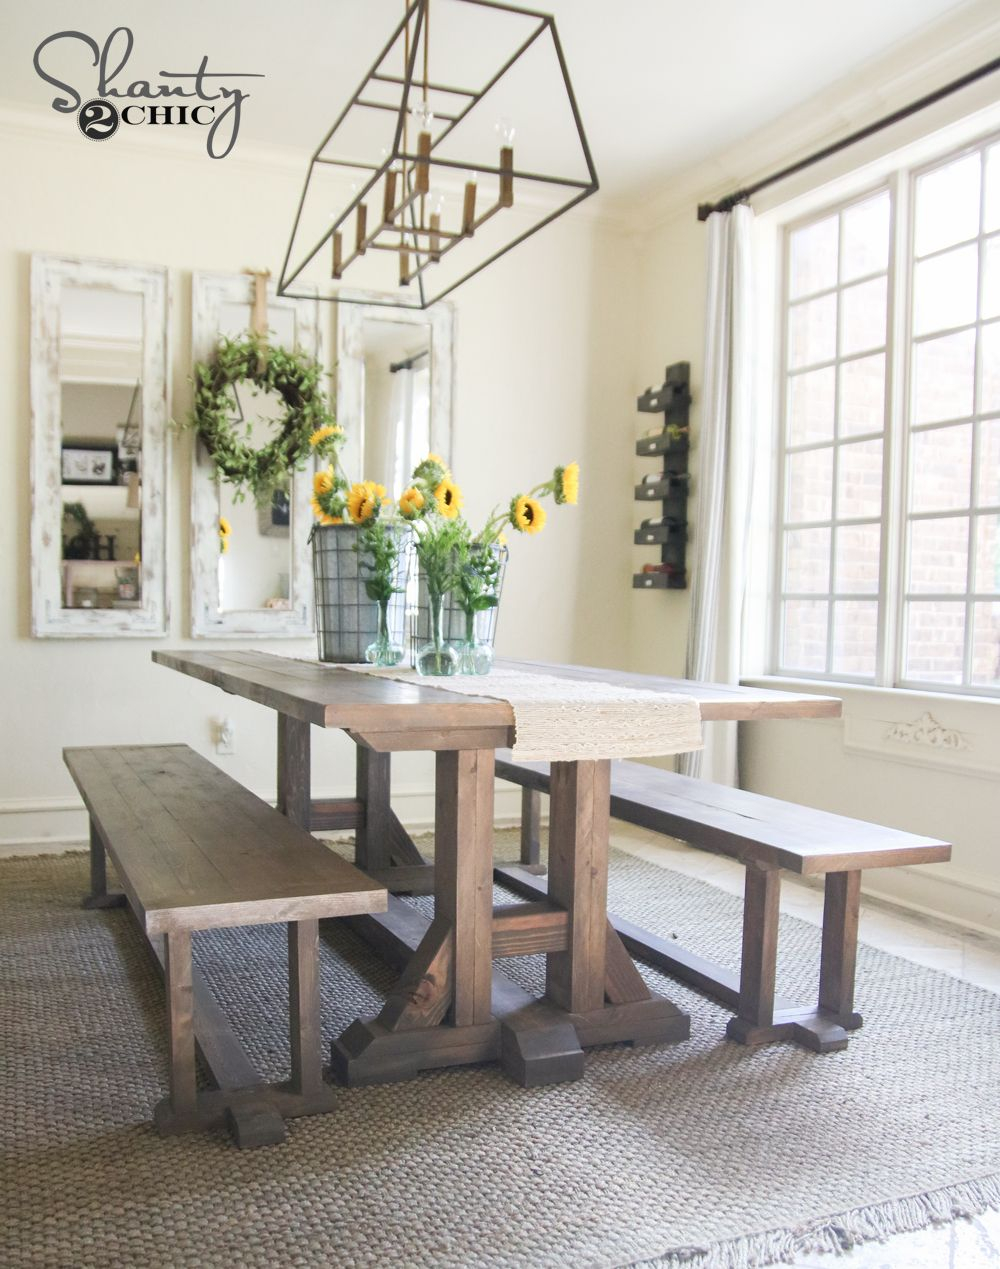 Diy Pottery Barn Inspired Dining Table For 100 Shantys Tutorials